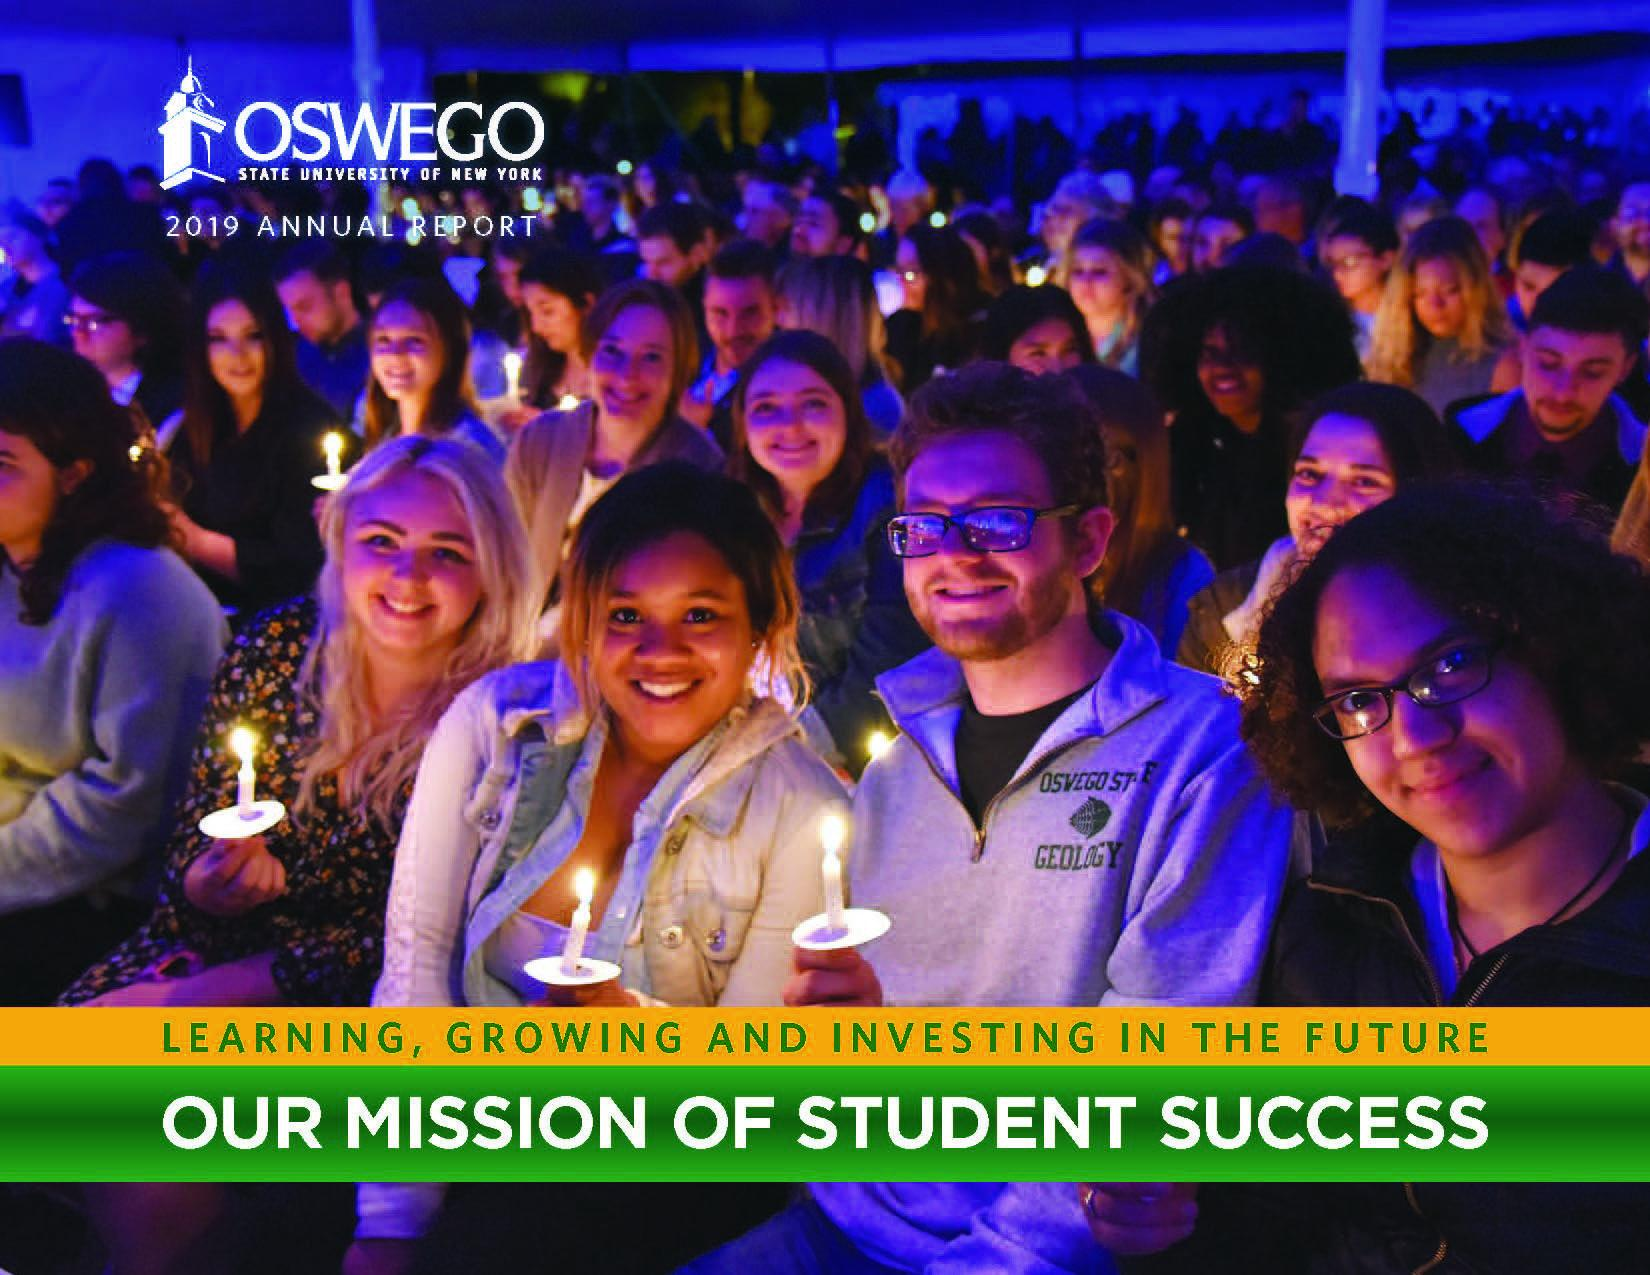 SUNY Oswego's 2018-2019 Annual Report: Learning, Growing and Investing in the Future